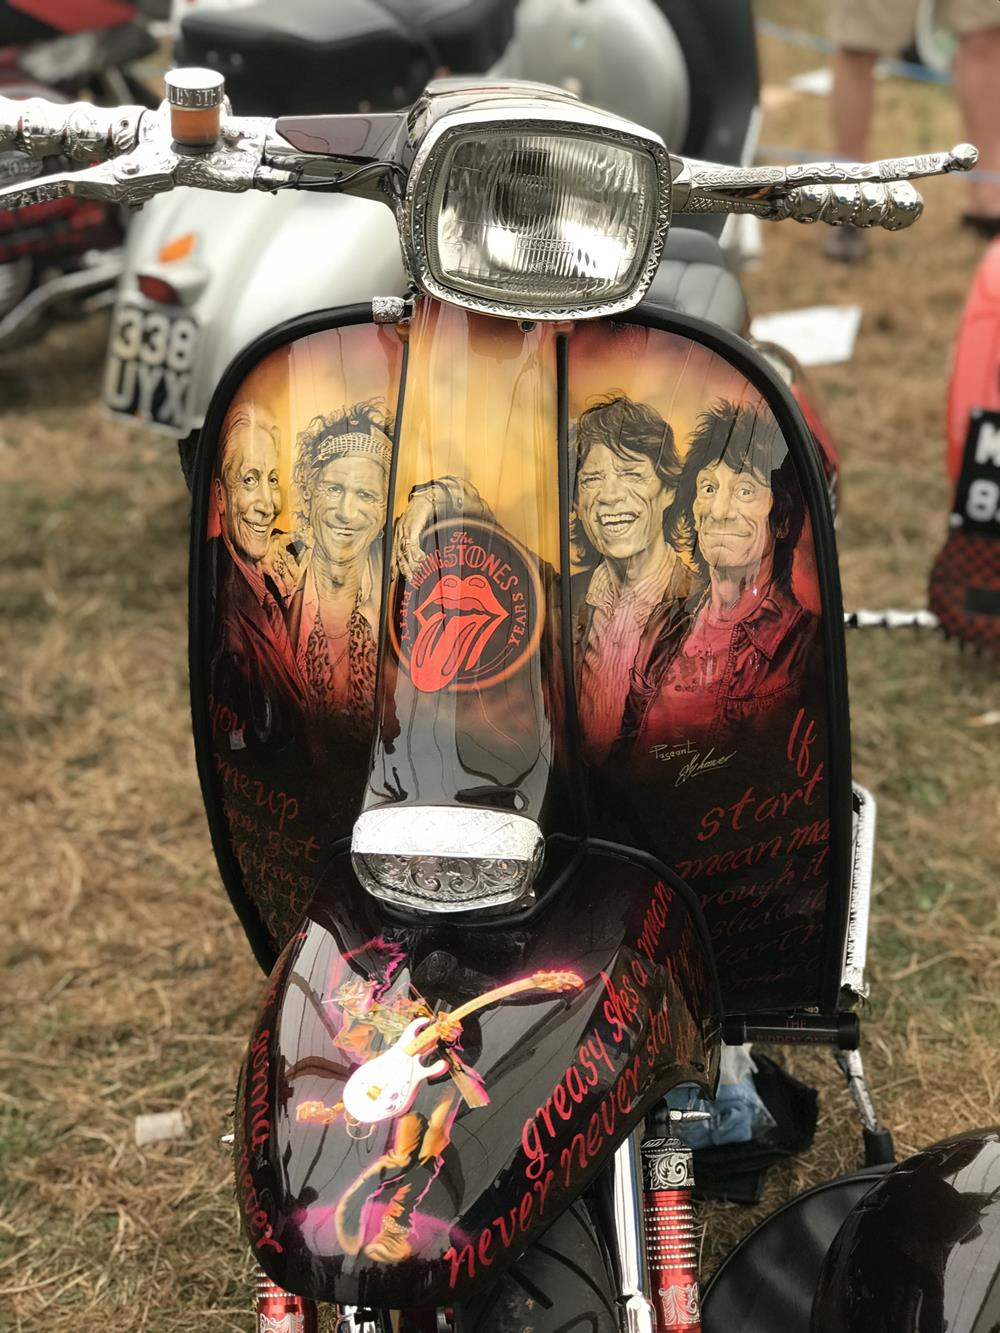 Legshield murals of the Rolling Stones on the front of custom Lambretta Start Me Up, on display at the Isle of Wight custom show